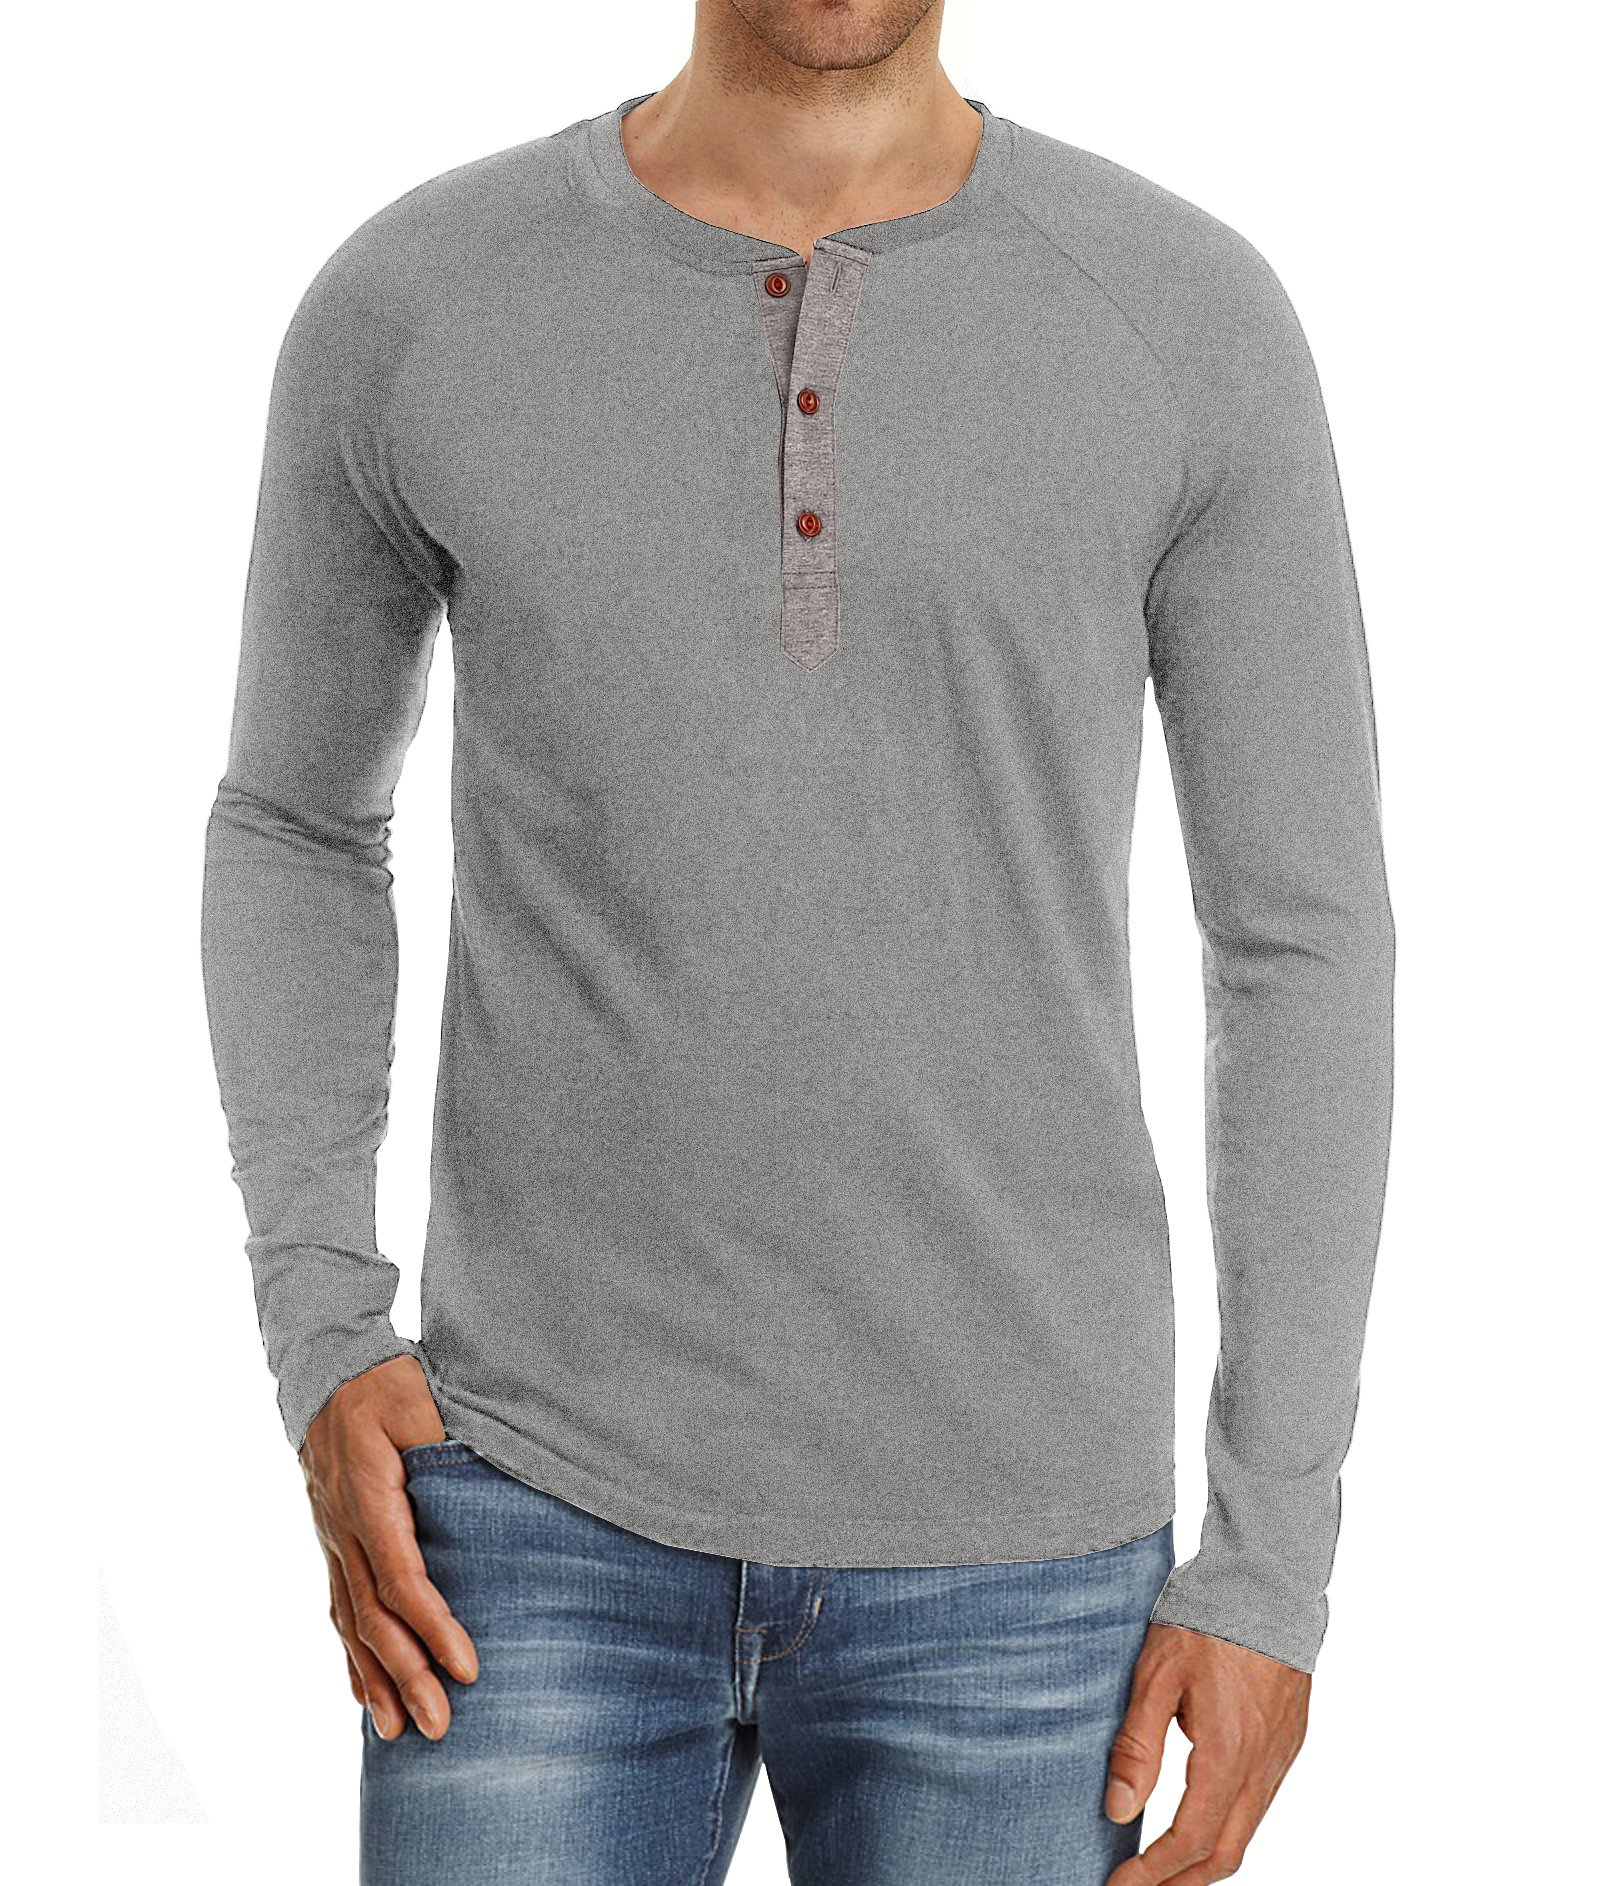 32b83414 Mr.Zhang Men's Casual Slim Fit Long Sleeve Henley T-Shirts Cotton Shirts  Light